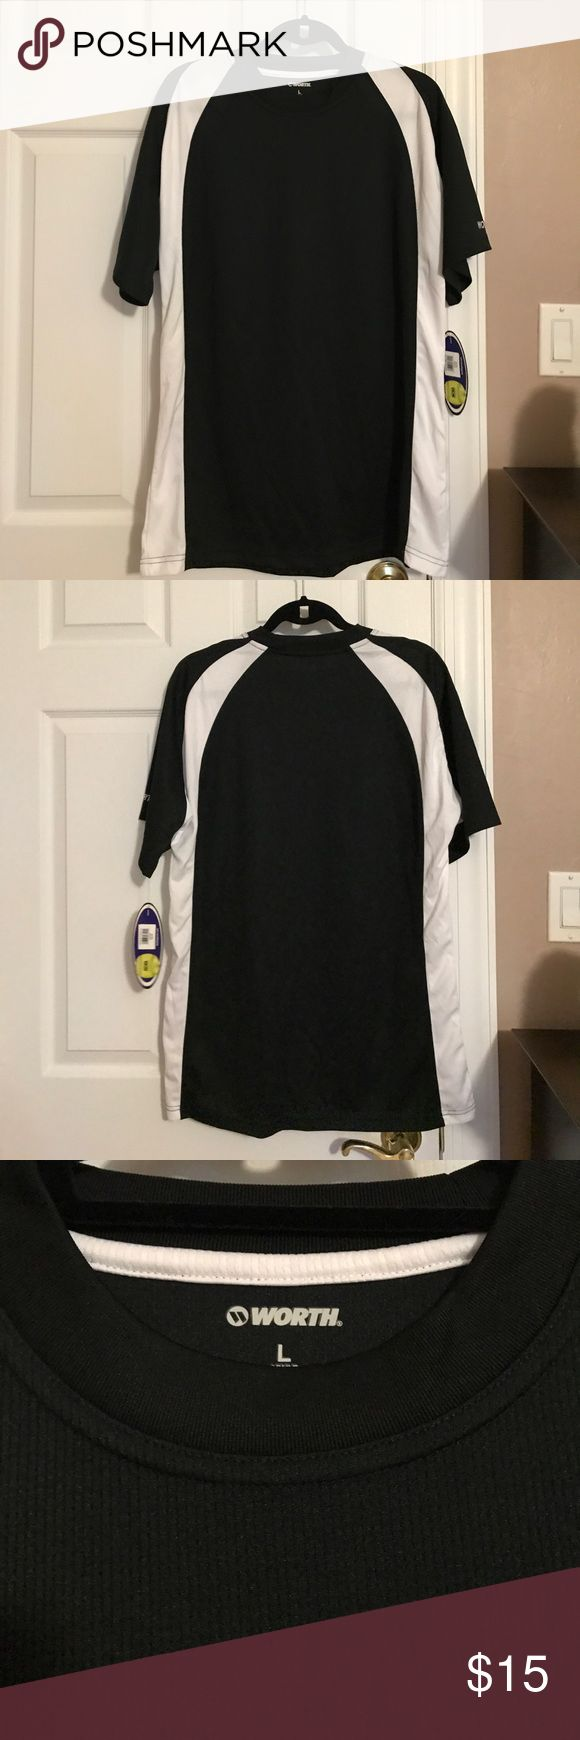 "Worth Softball Jersey Black and whites ladies softball jersey . Short sleeves and round neck . 100% polyester. 30"" shoulder to bottom. 23"" armpit to armpit. NWT. Worth Tops"